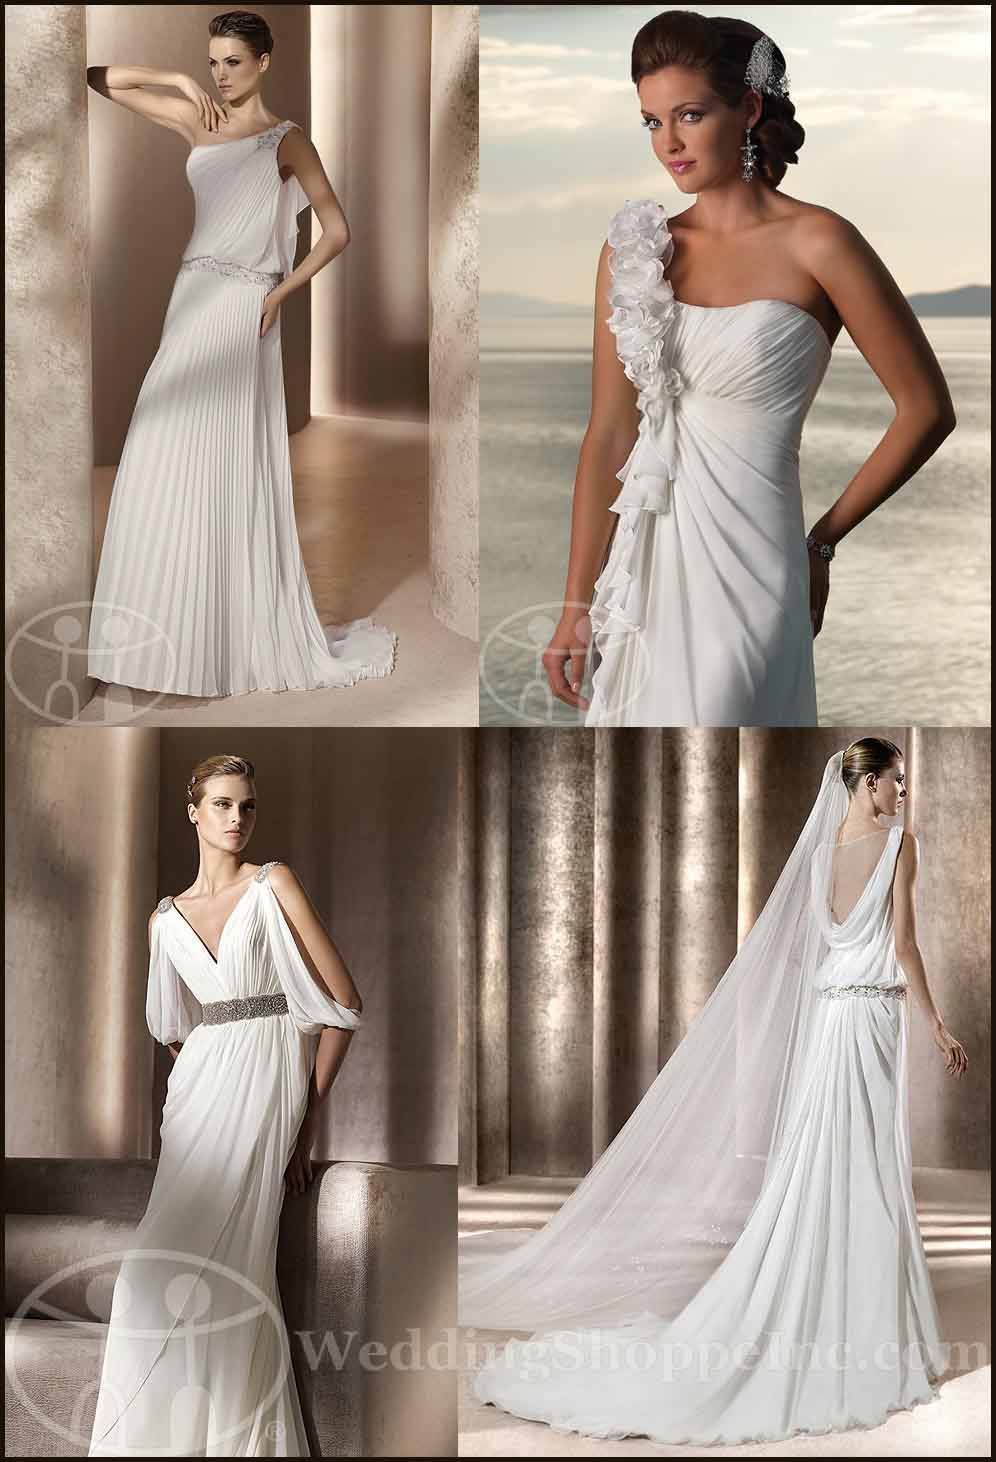 Forever Classic 2012 Wedding Trends: Grecian Wedding Gowns #grecianweddingdresses My Wedding Chat » Blog Archive Grecian Wedding Gowns: Shop Grecian wedding dresses today, at Wedding Shoppe! #grecianweddingdresses Forever Classic 2012 Wedding Trends: Grecian Wedding Gowns #grecianweddingdresses My Wedding Chat » Blog Archive Grecian Wedding Gowns: Shop Grecian wedding dresses today, at Wedding Shoppe! #grecianweddingdresses Forever Classic 2012 Wedding Trends: Grecian Wedding Gowns #grecianwed #greekweddingdresses